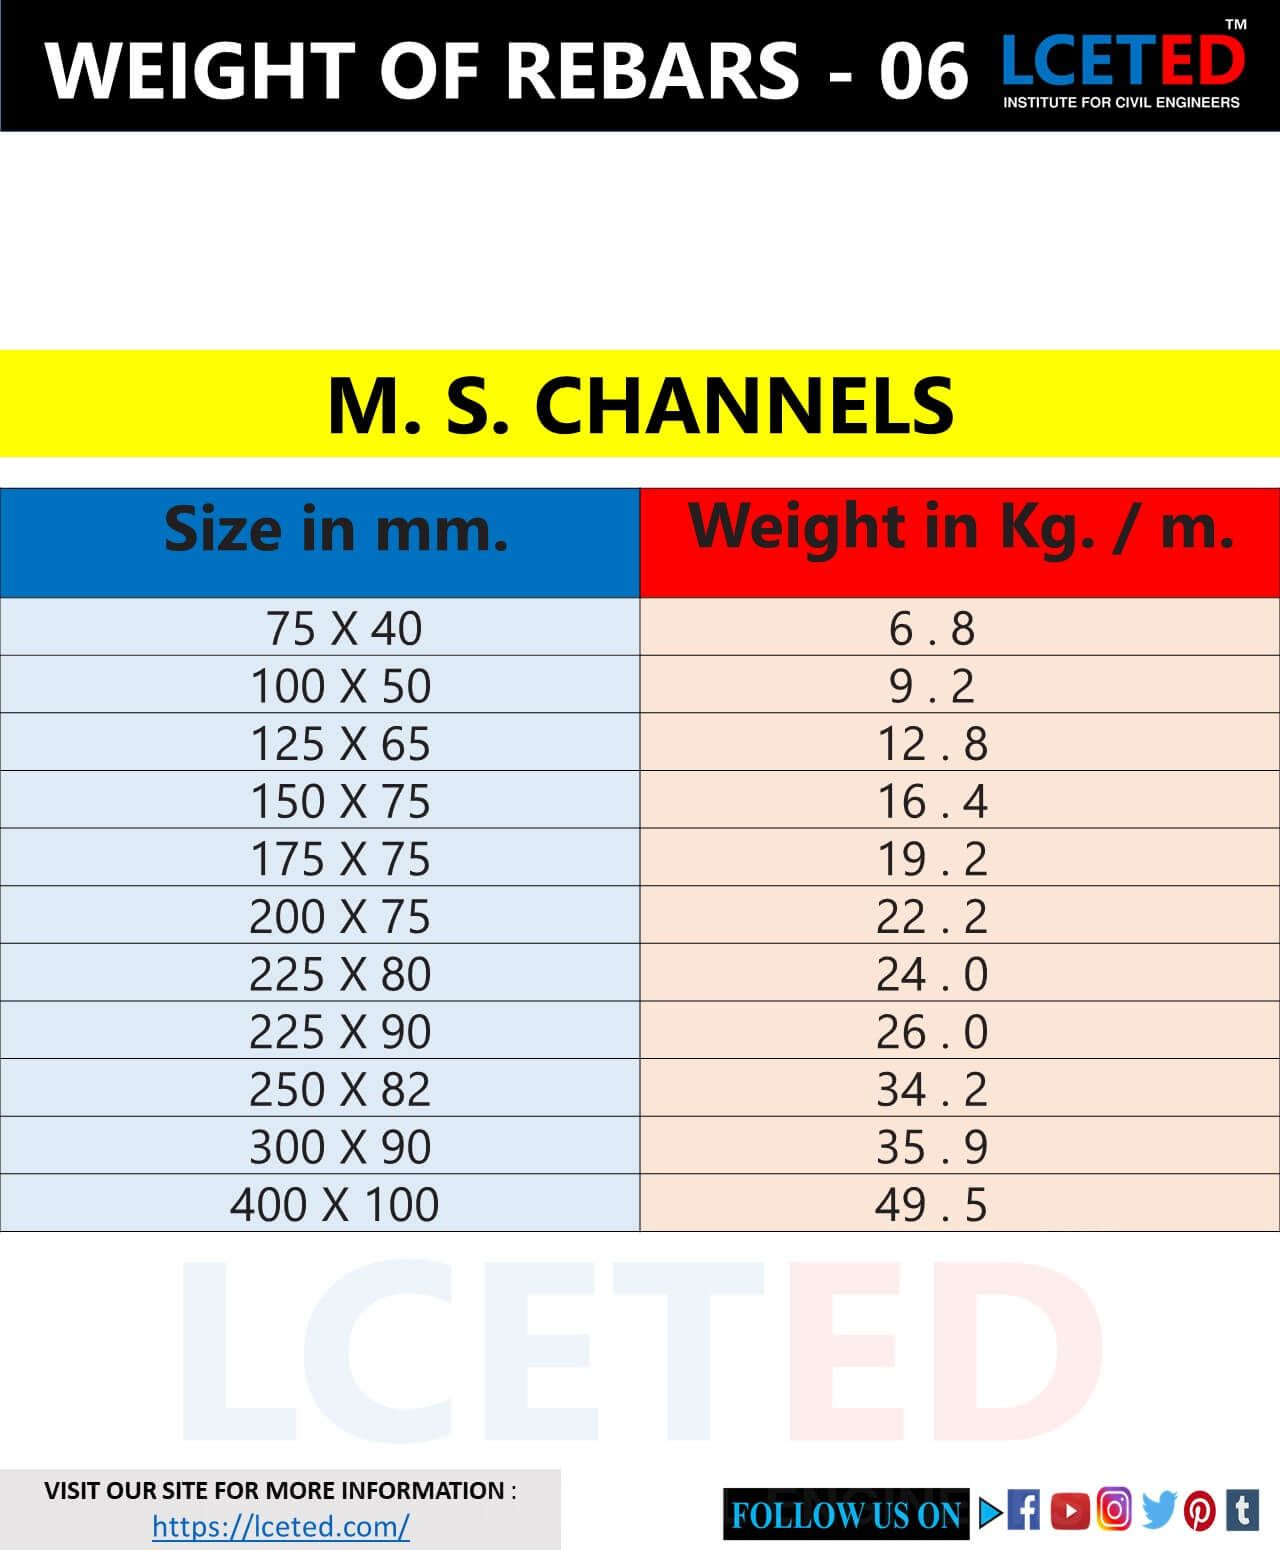 Different Shapes Of Rebars Weight Chart In 2020 Civil Engineering Weight Charts Engineering